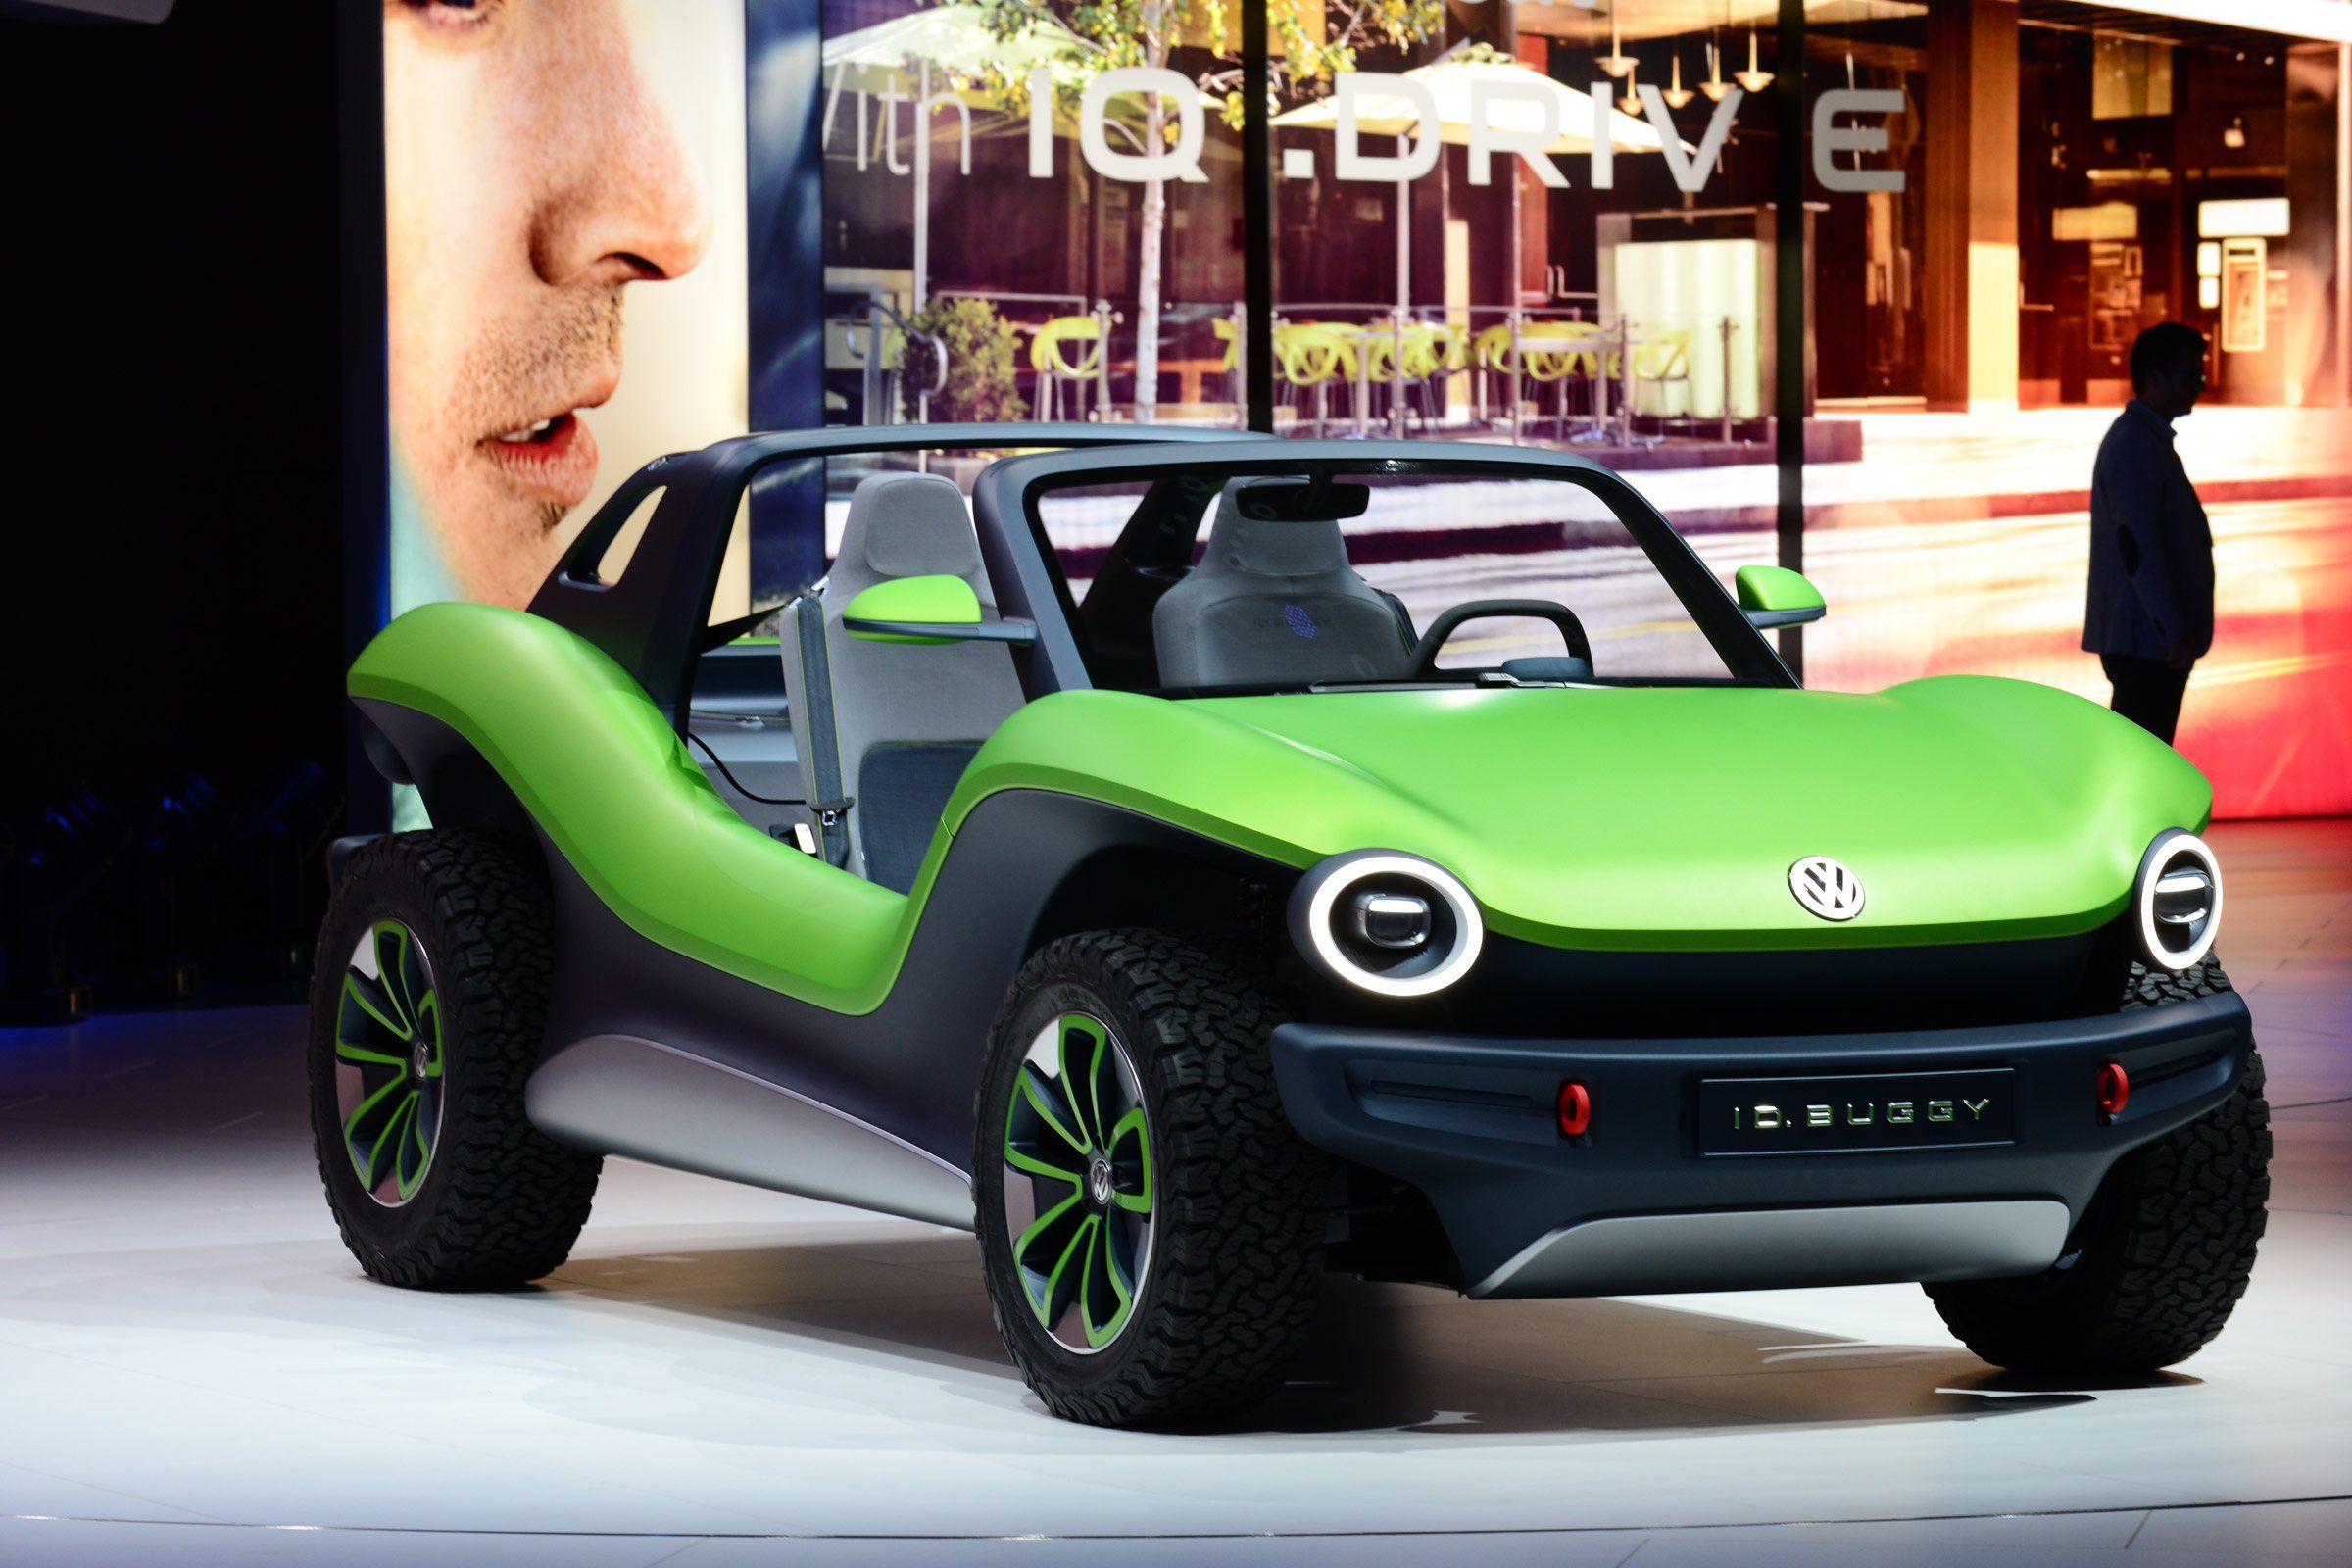 2021 Vw Beetle Dune Release Date And Concept In 2020 Vw Beetles Volkswagen Beetle Convertible Volkswagen New Beetle